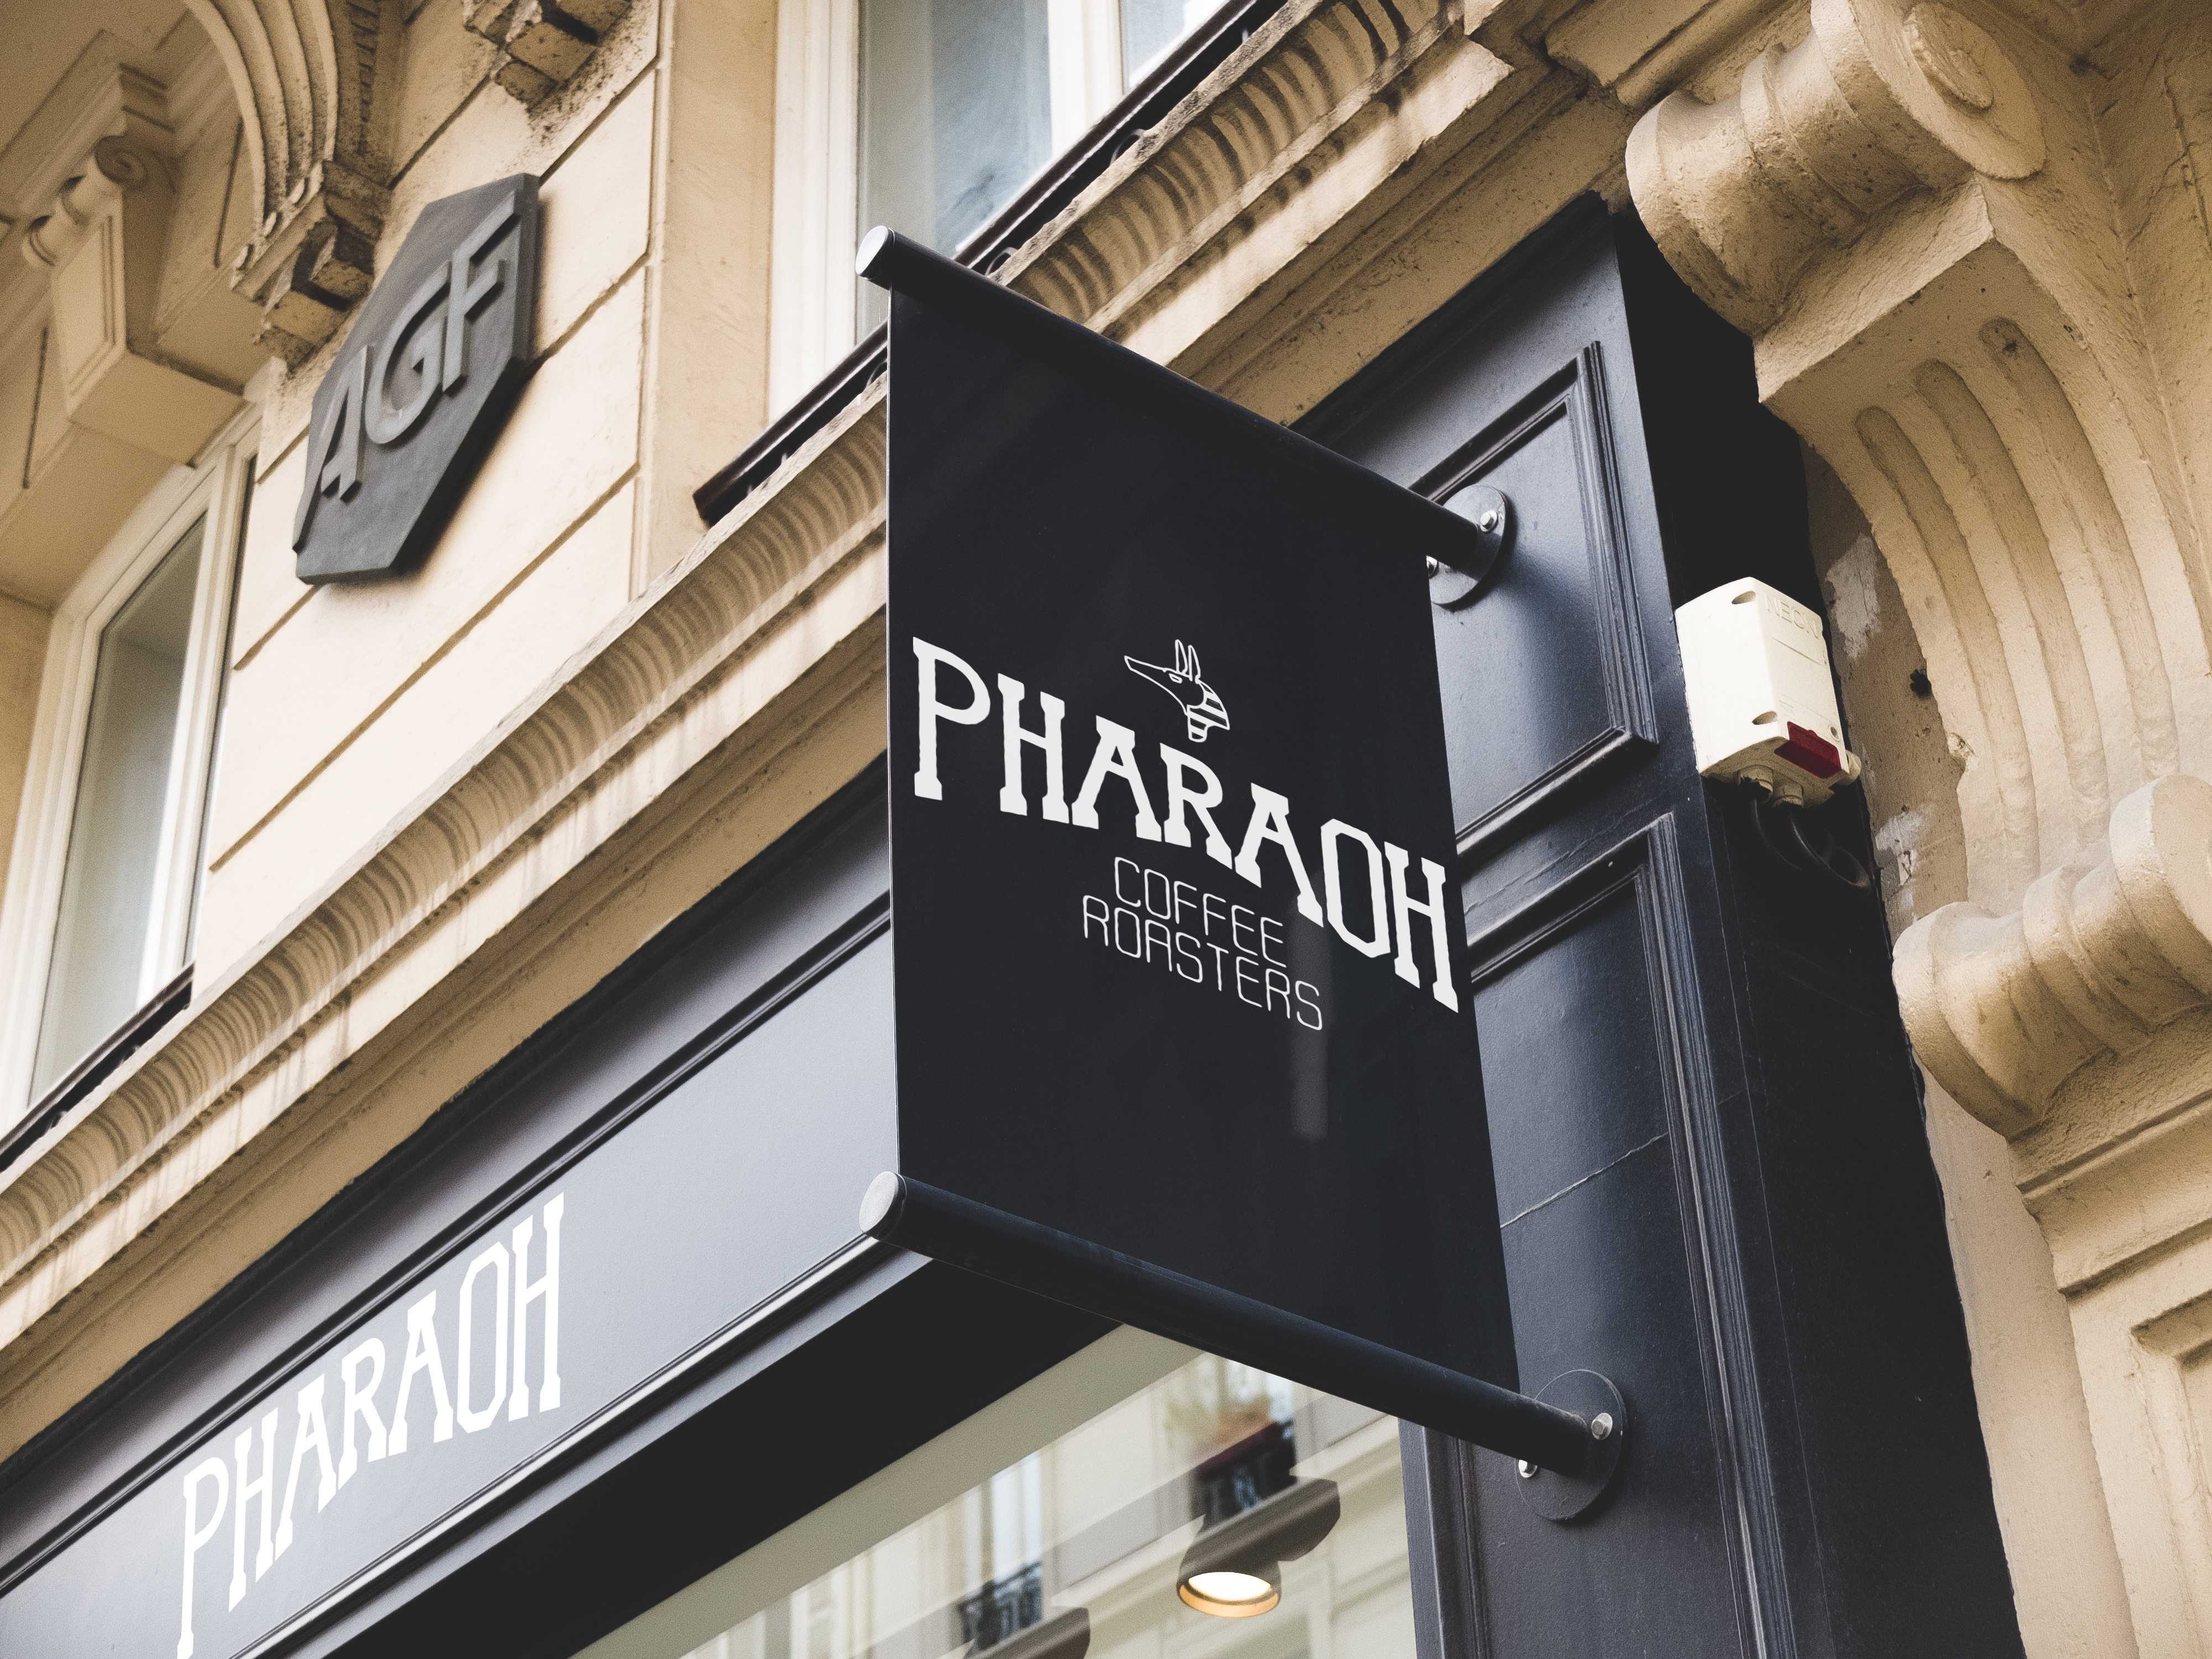 Pharaoh Coffee Roasters Outdoor Signage